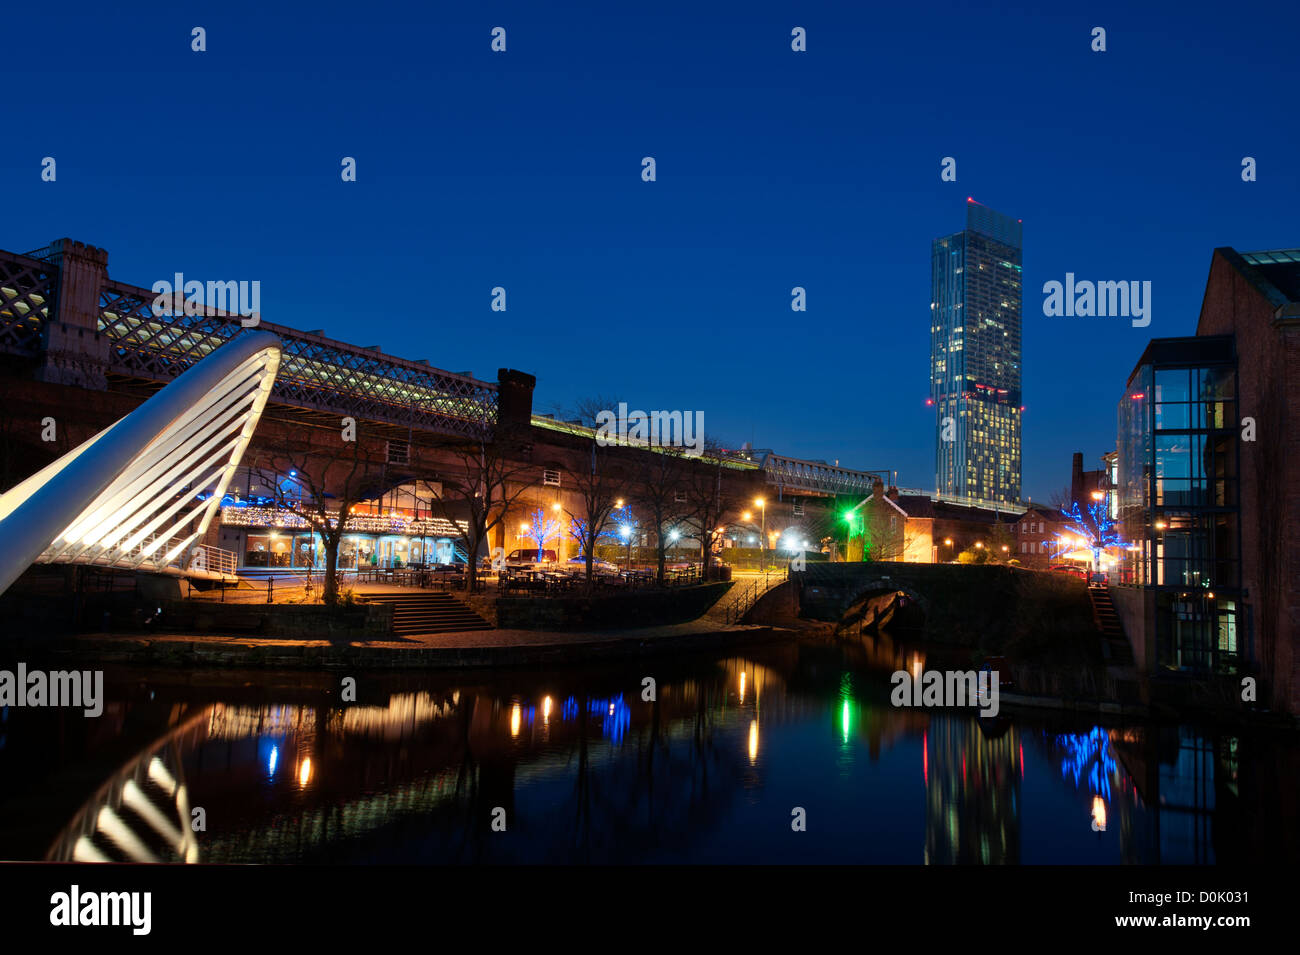 A view of the Castlefield area of Manchester. - Stock Image